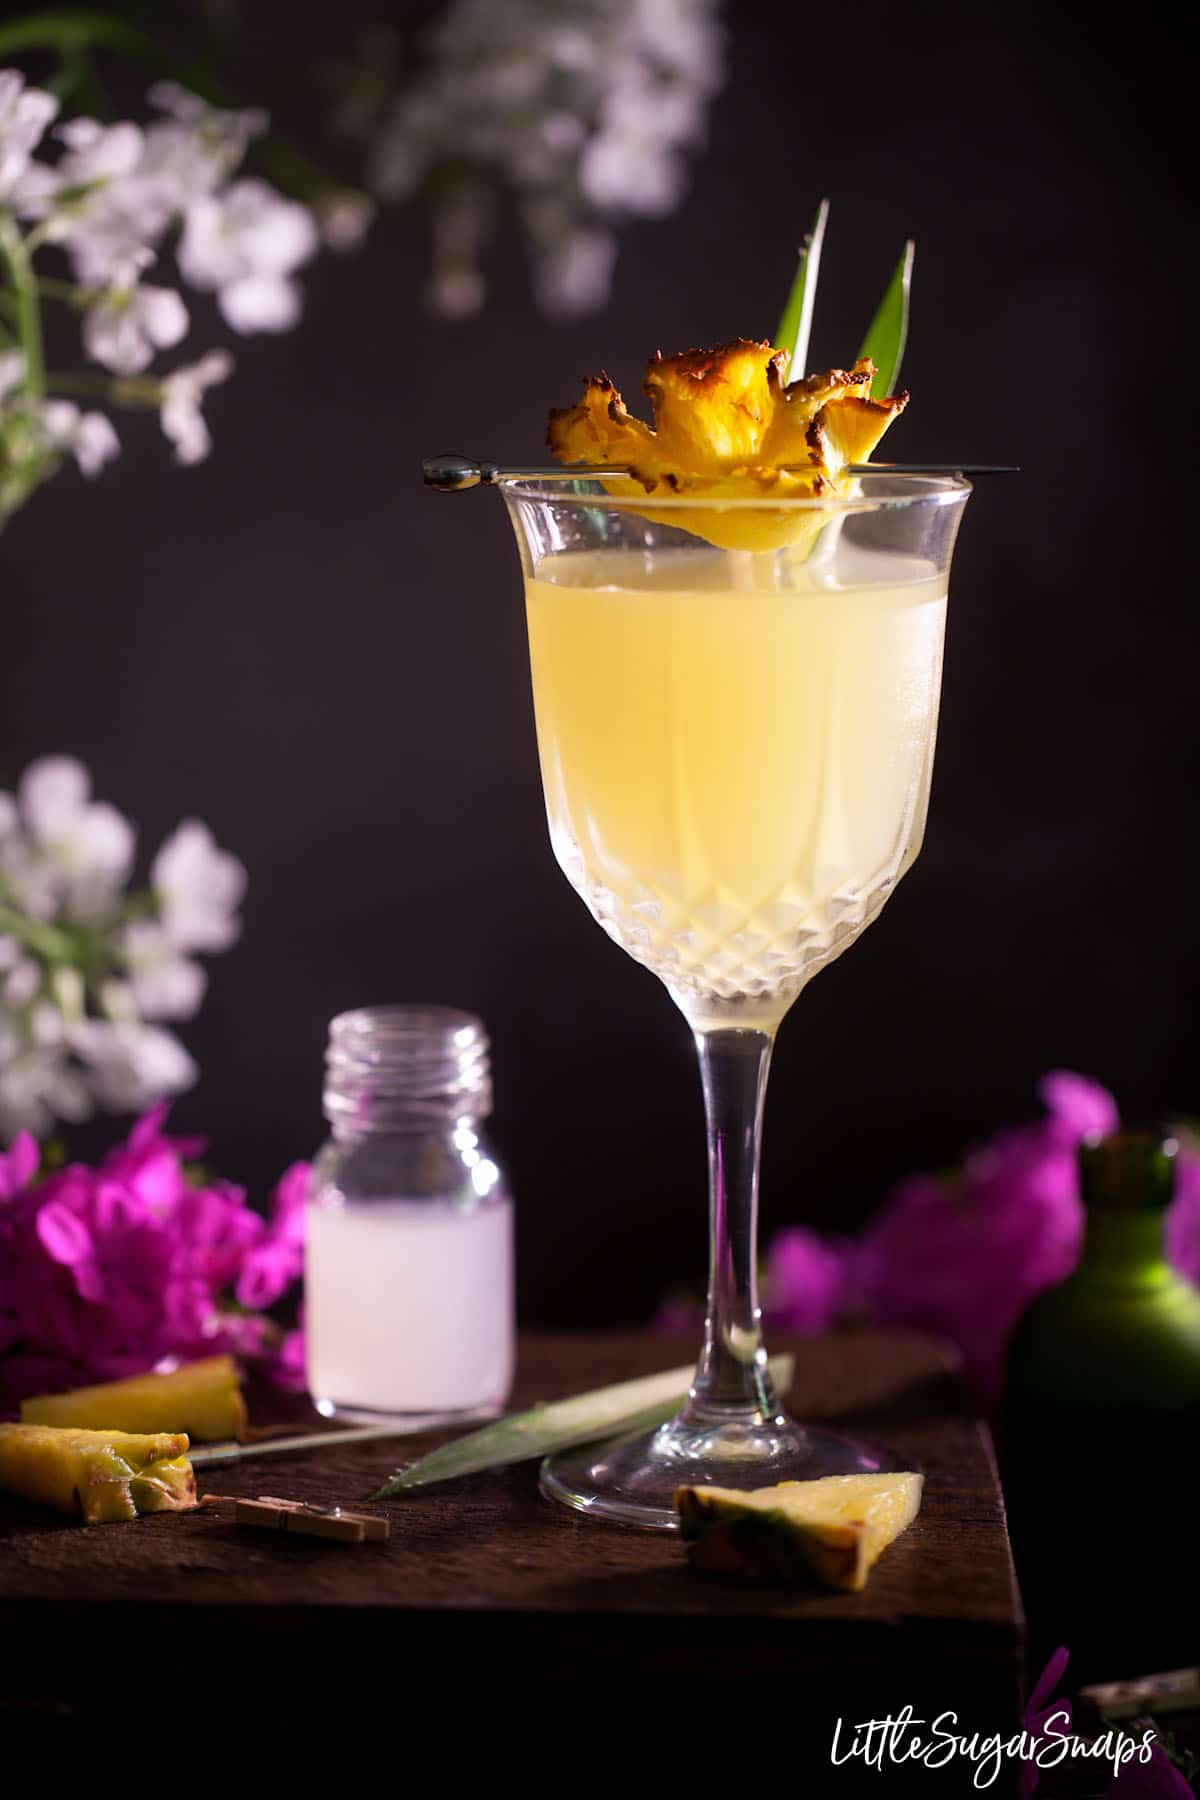 A Royal Hawaiian Cocktail garnished with dried pineapple and fresh pineapple leaves